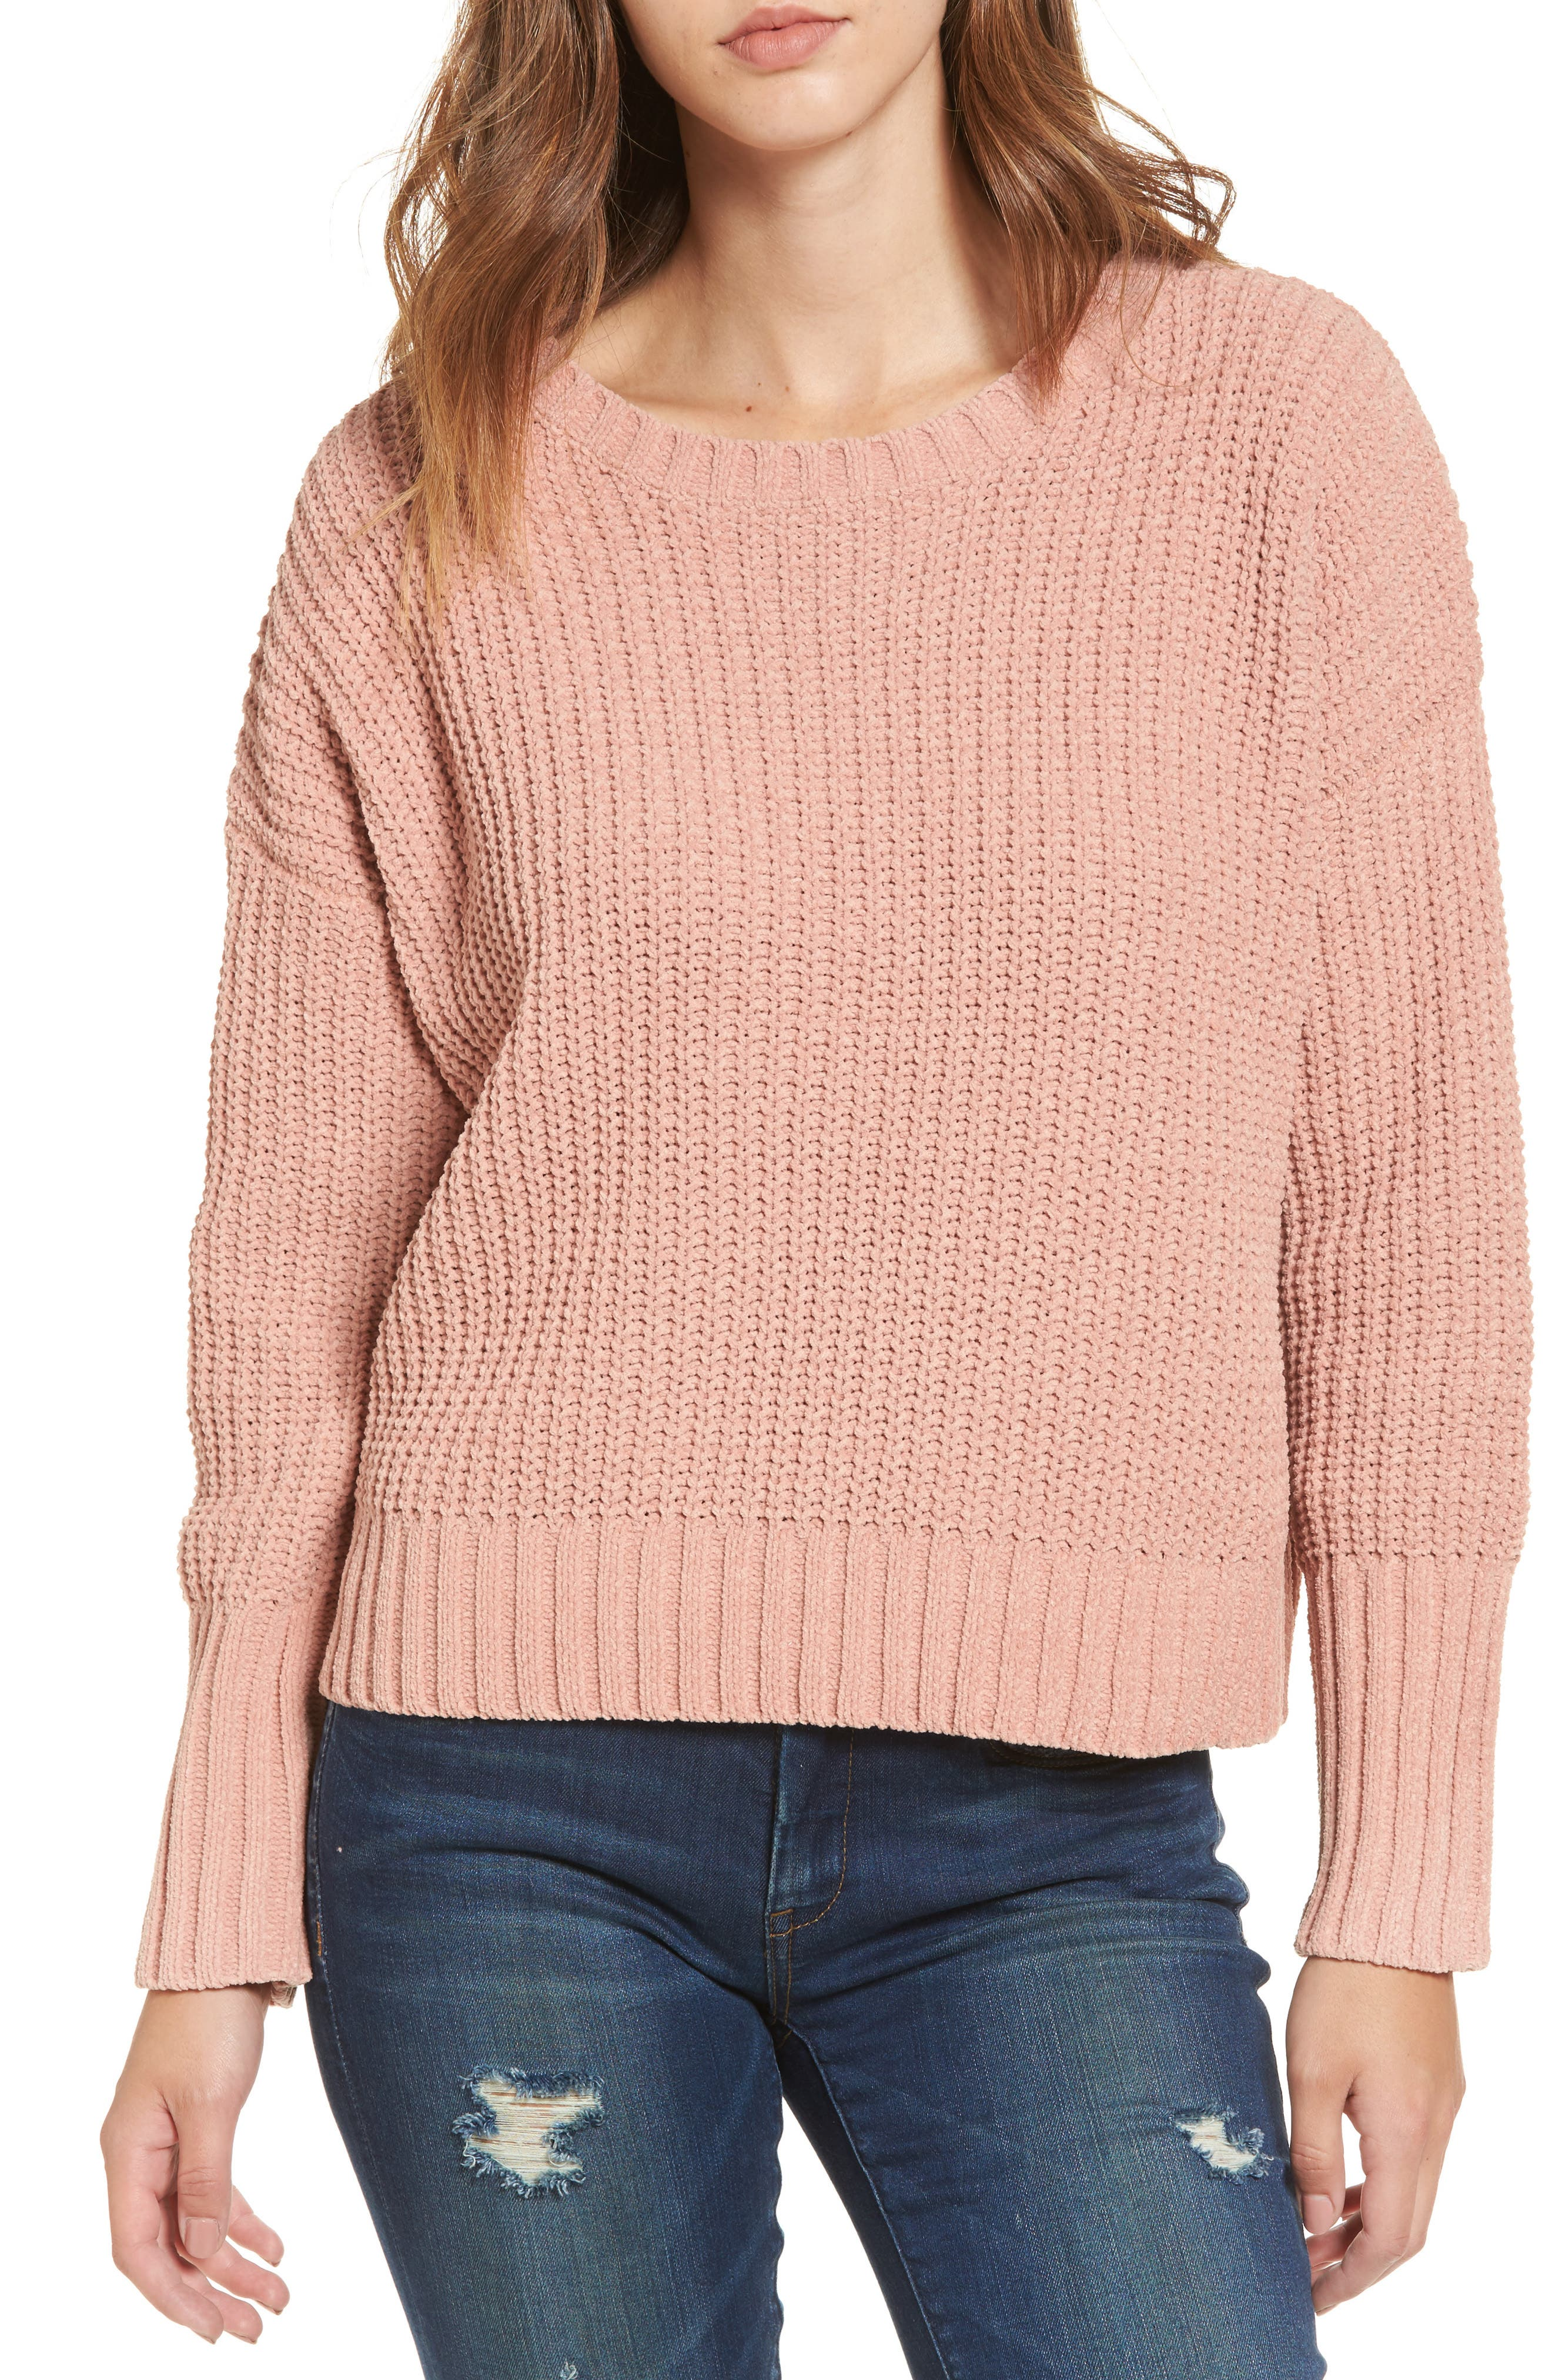 Alternate Image 1 Selected - MOON RIVER Drop Shoulder Chunky Knit Sweater